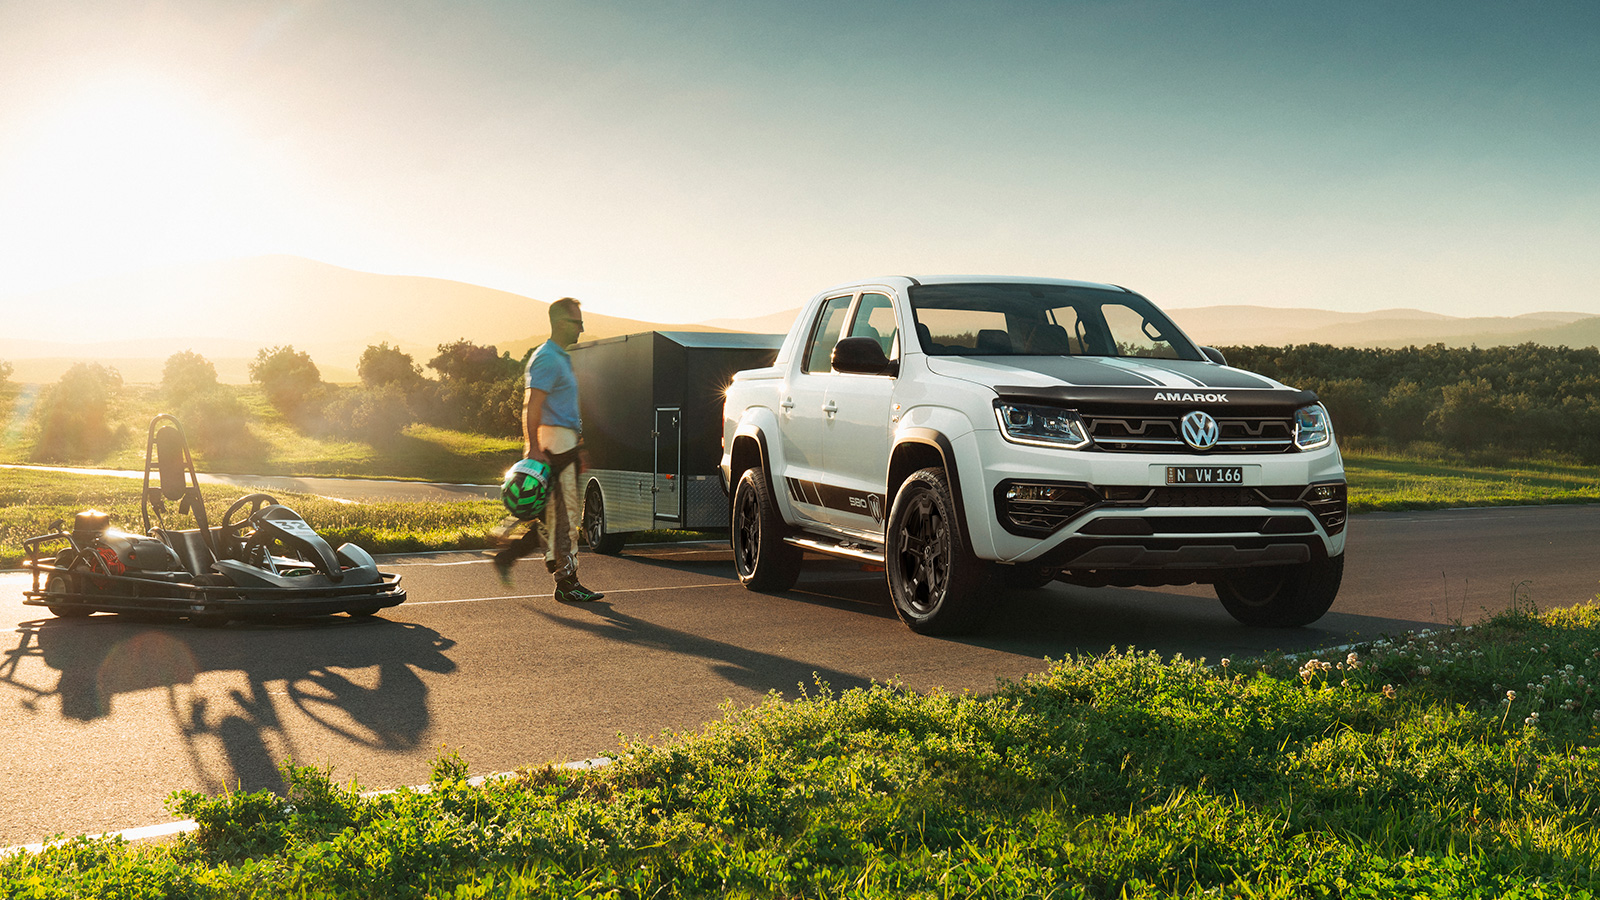 The W580 is the culmination of some 12 months of closely guarded collaboration between Volkswagen Australia and Walkinshaw.